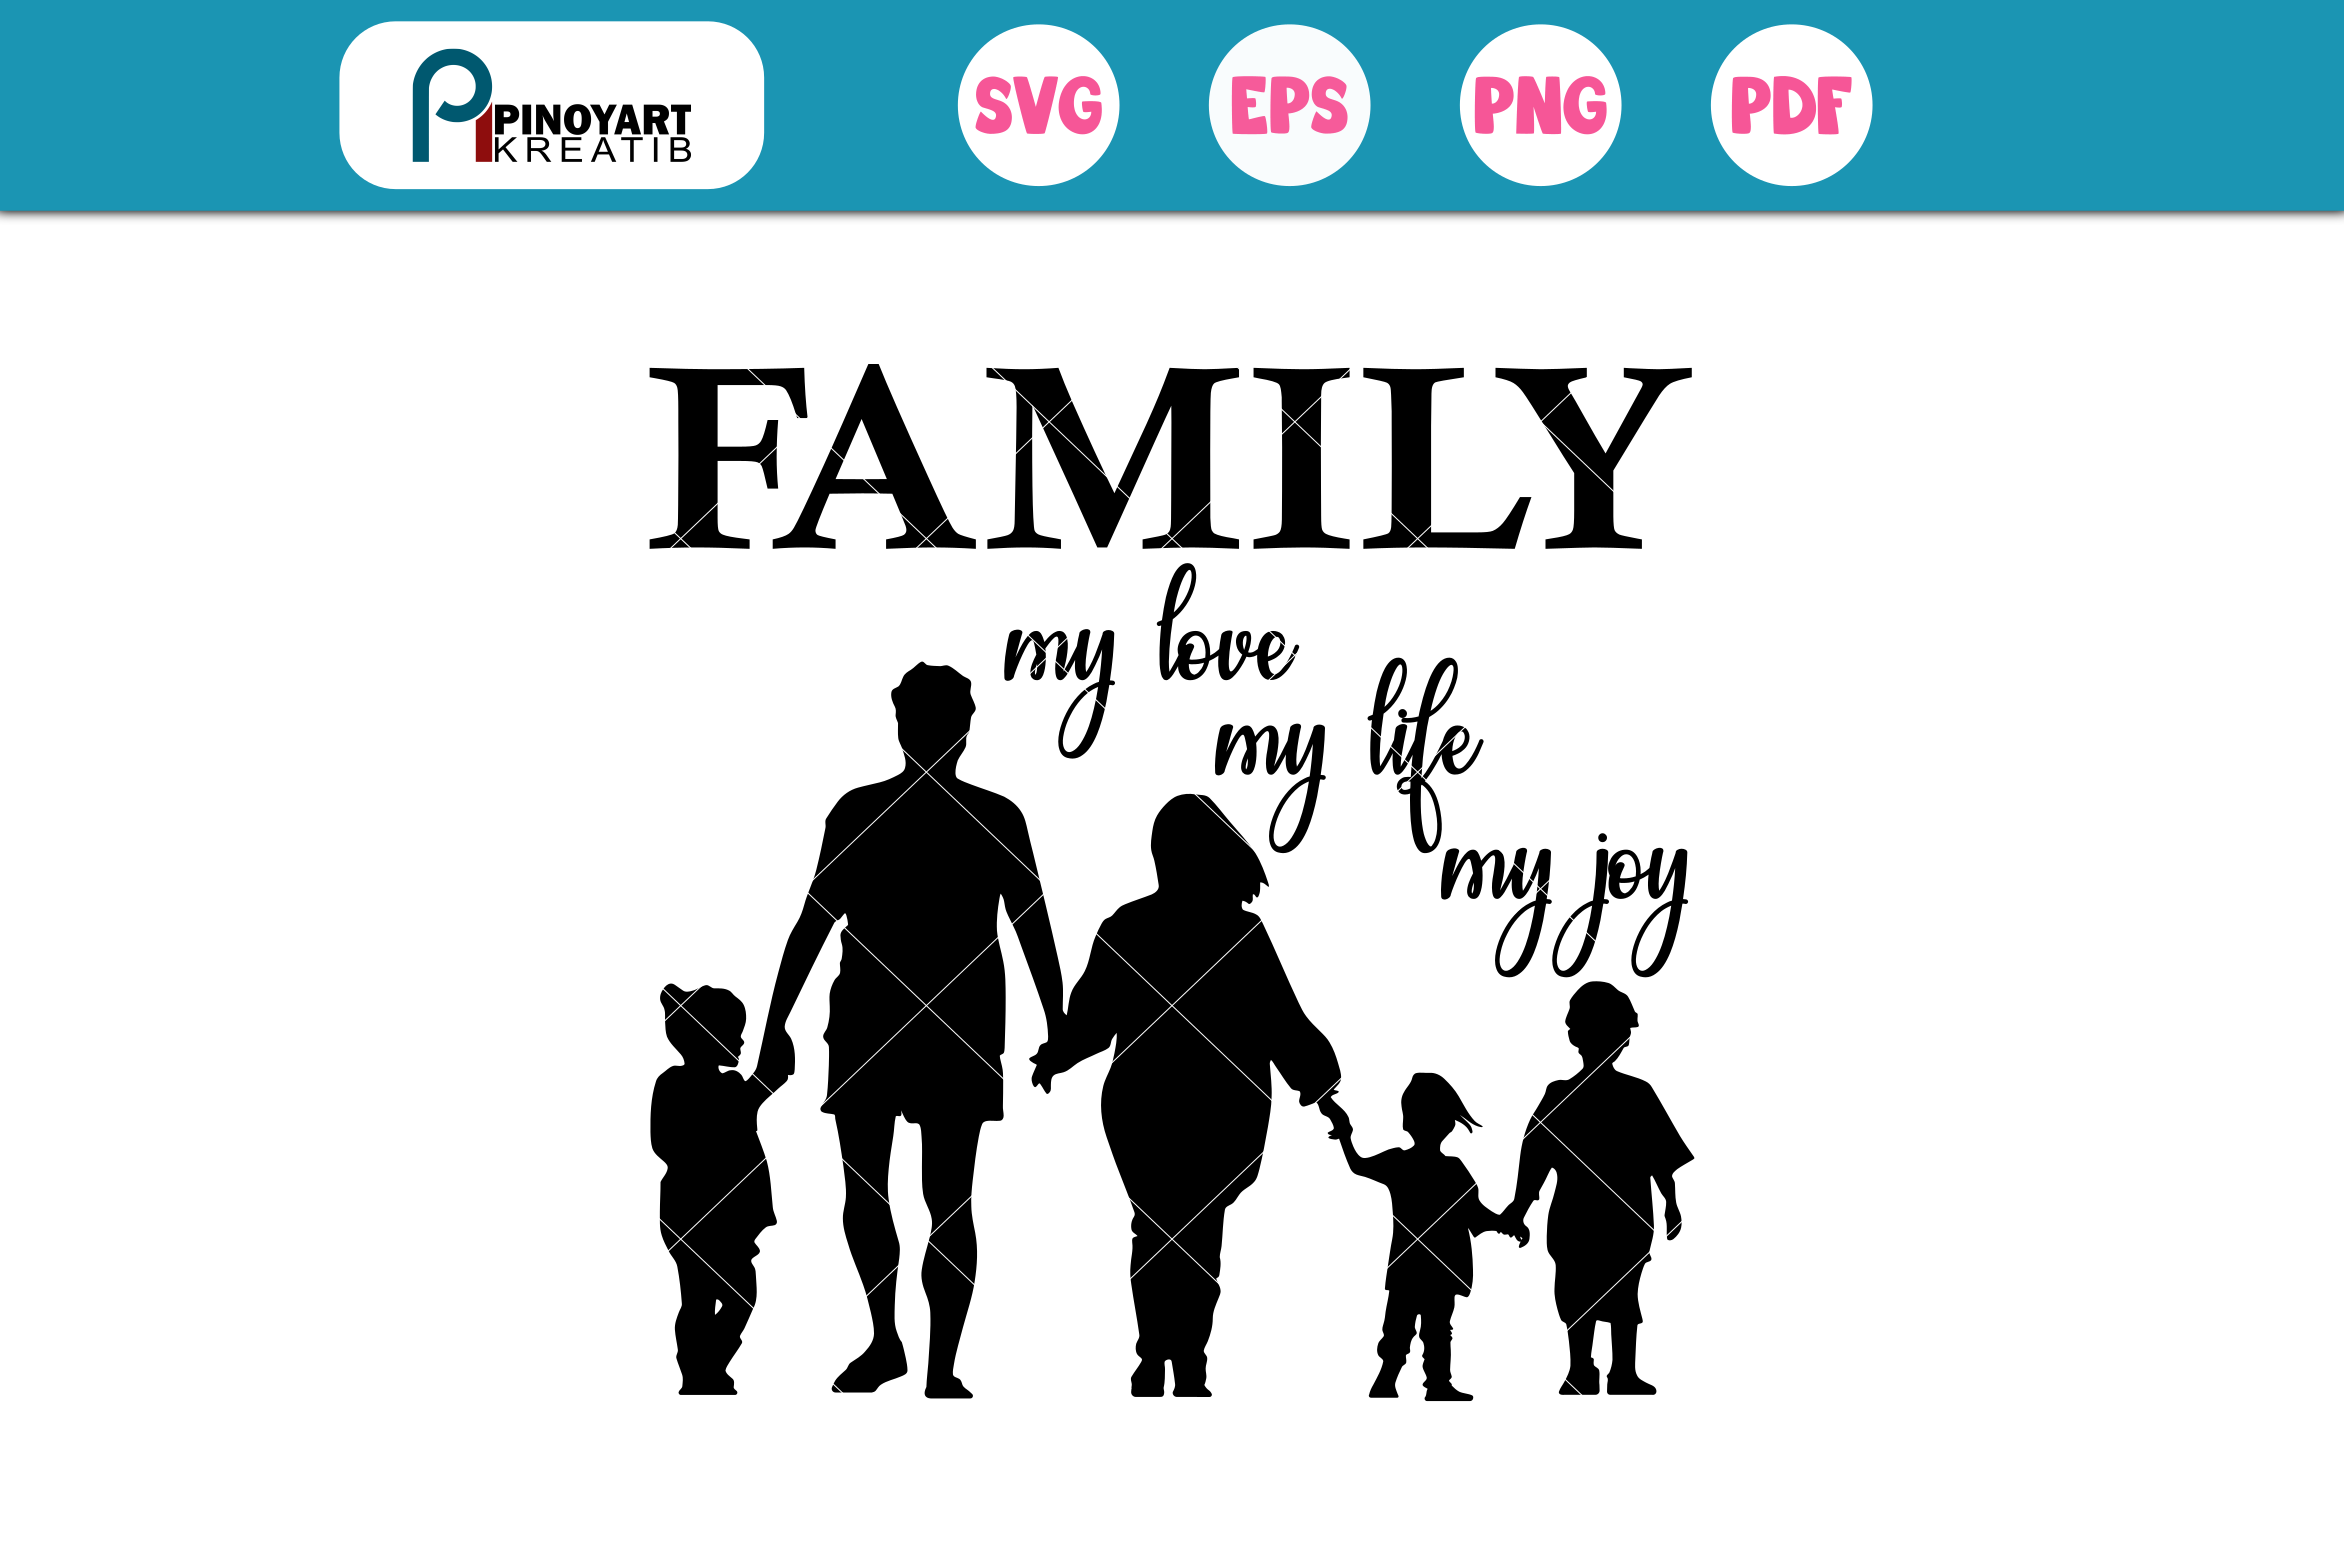 Download Free Family Graphic By Pinoyartkreatib Creative Fabrica for Cricut Explore, Silhouette and other cutting machines.